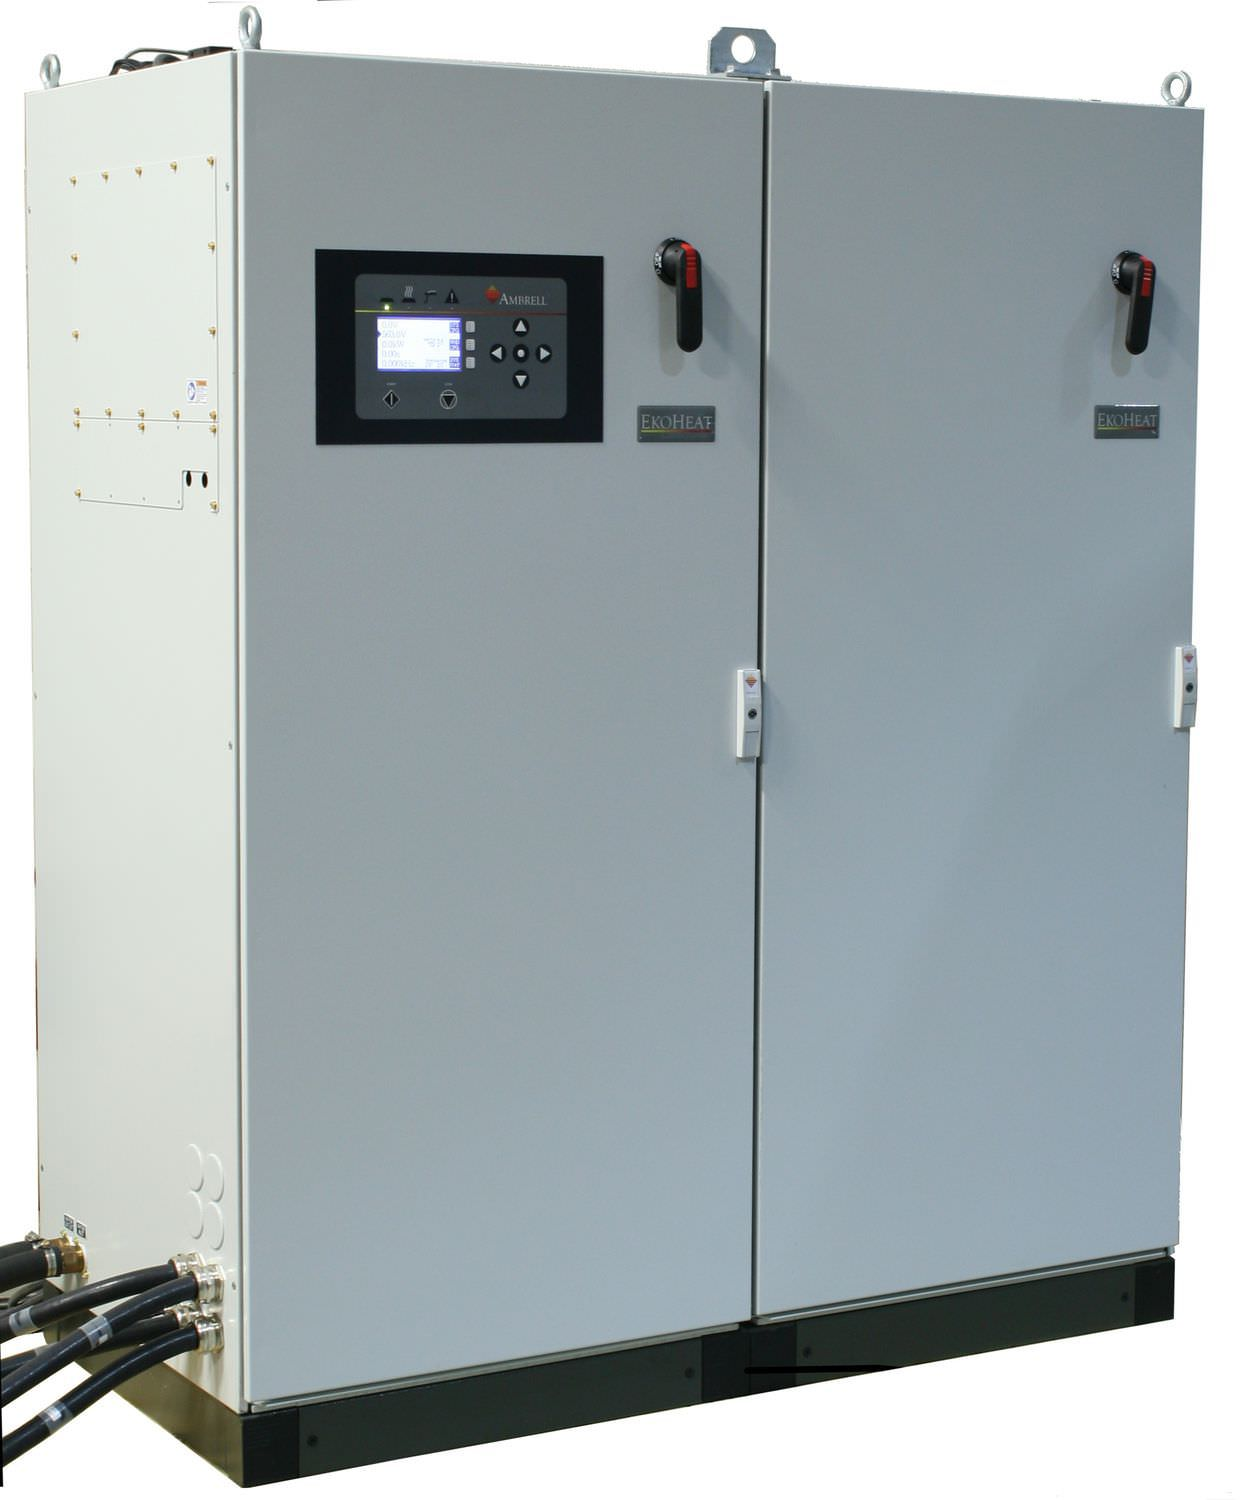 EKOHEAT 180/100 Quenching induction heater 180 kW, 50 – 150 kHz